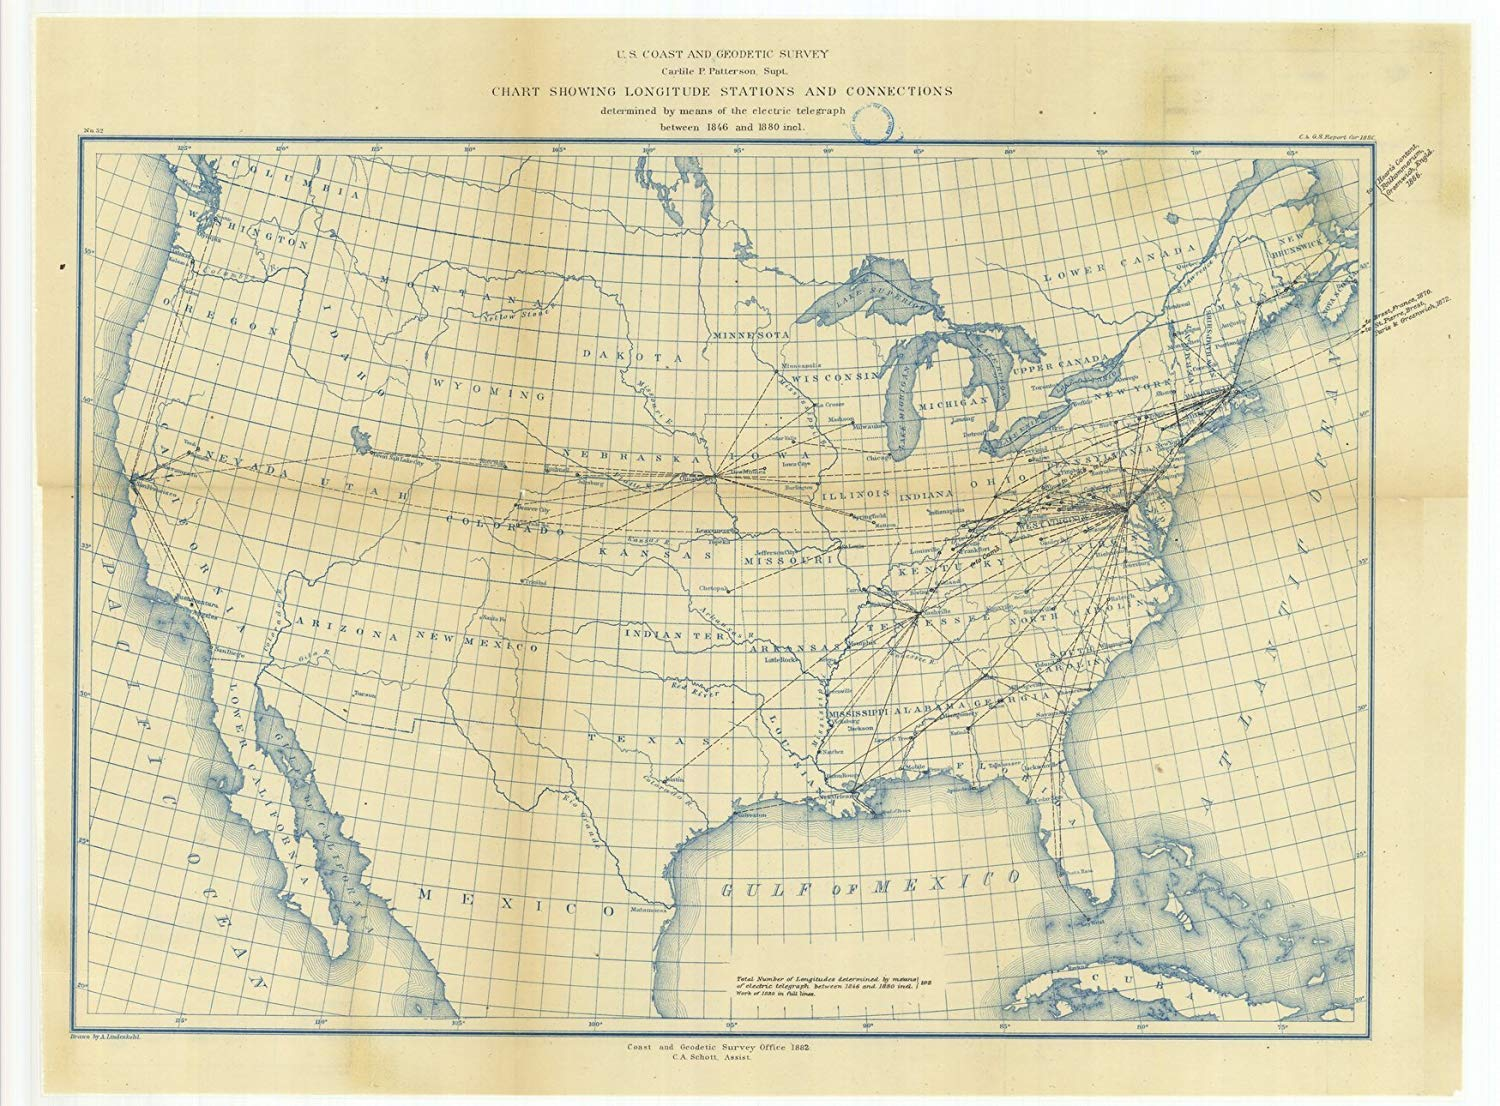 Vintography 8 x 12 inch 1880 Maine Old Nautical map Drawing Chart Chart Showing Longitude Stations Connections Determined Means The Electric Telegraph Between 1846 1880 from US Coast & Geodeti